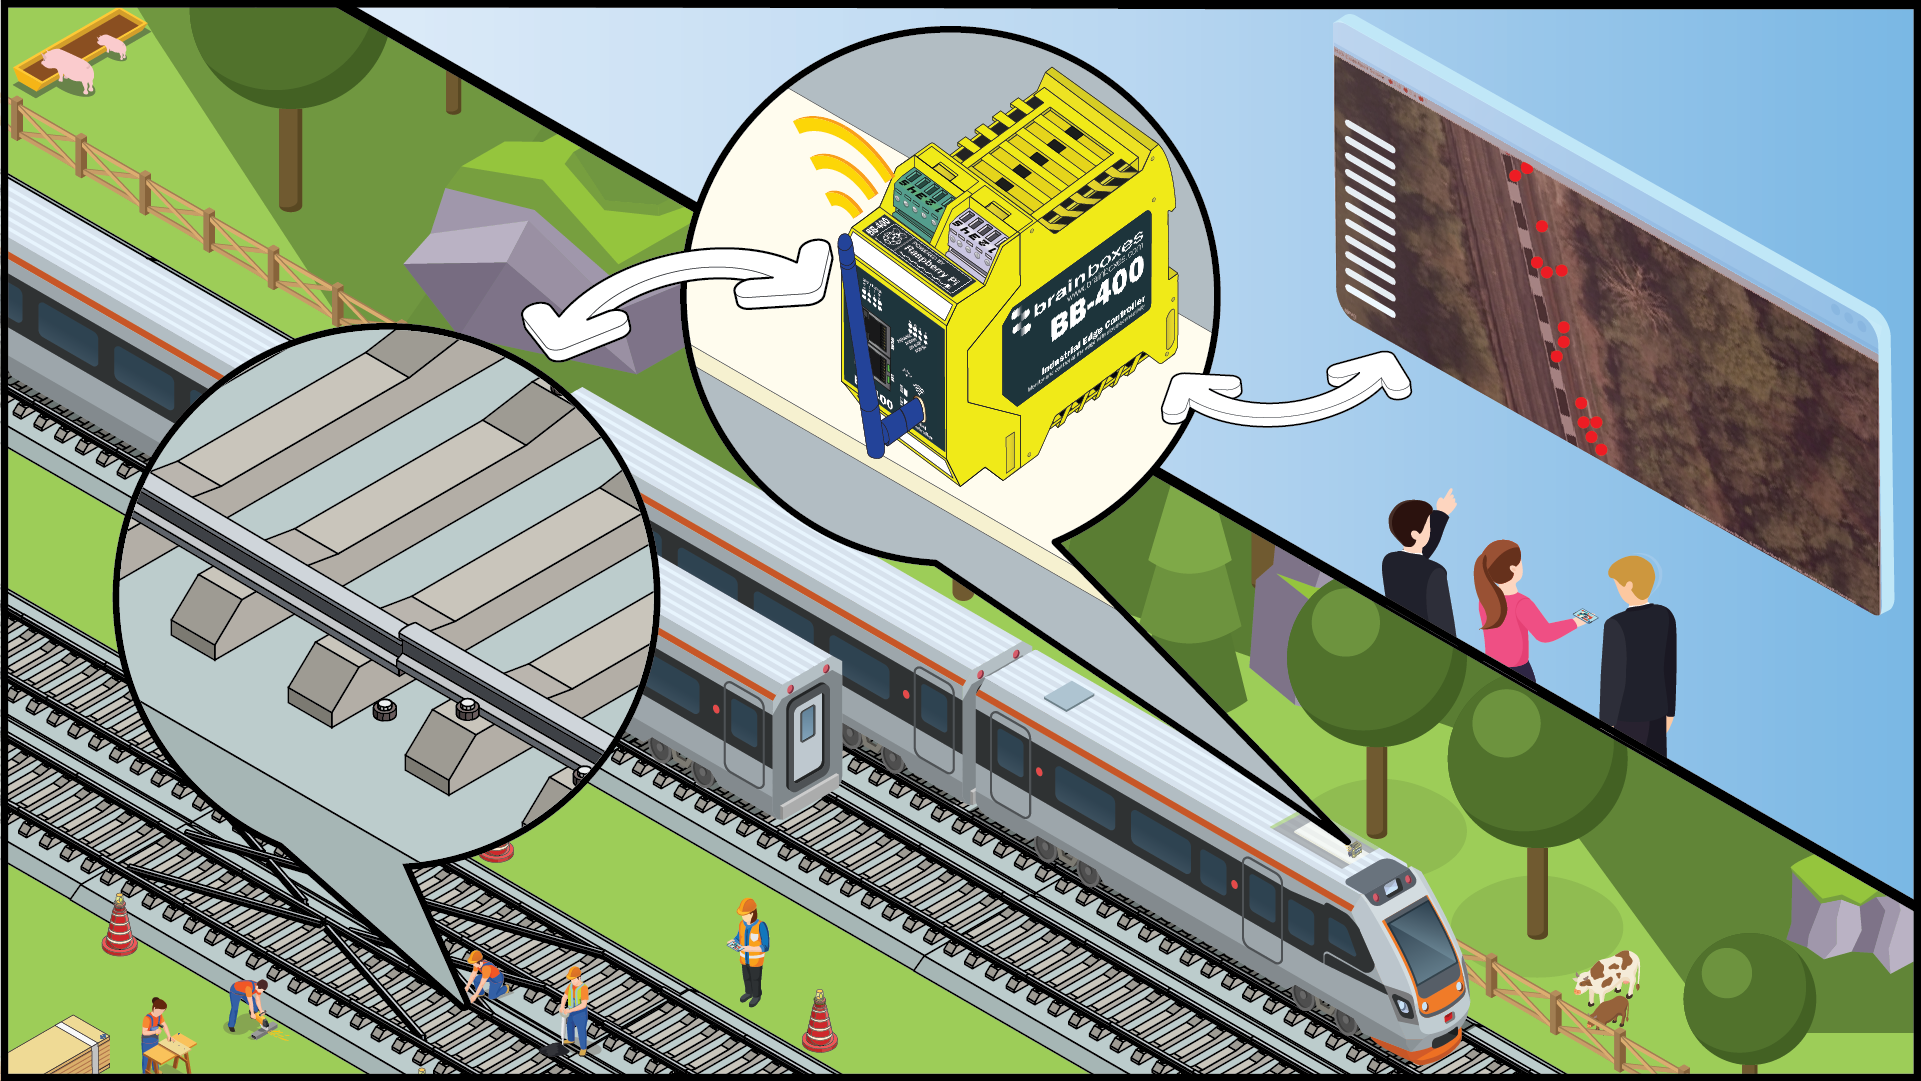 graphic detailing Brainboxes BB-400 industrial edge controller sending data from Govia Thameslink trains to head office